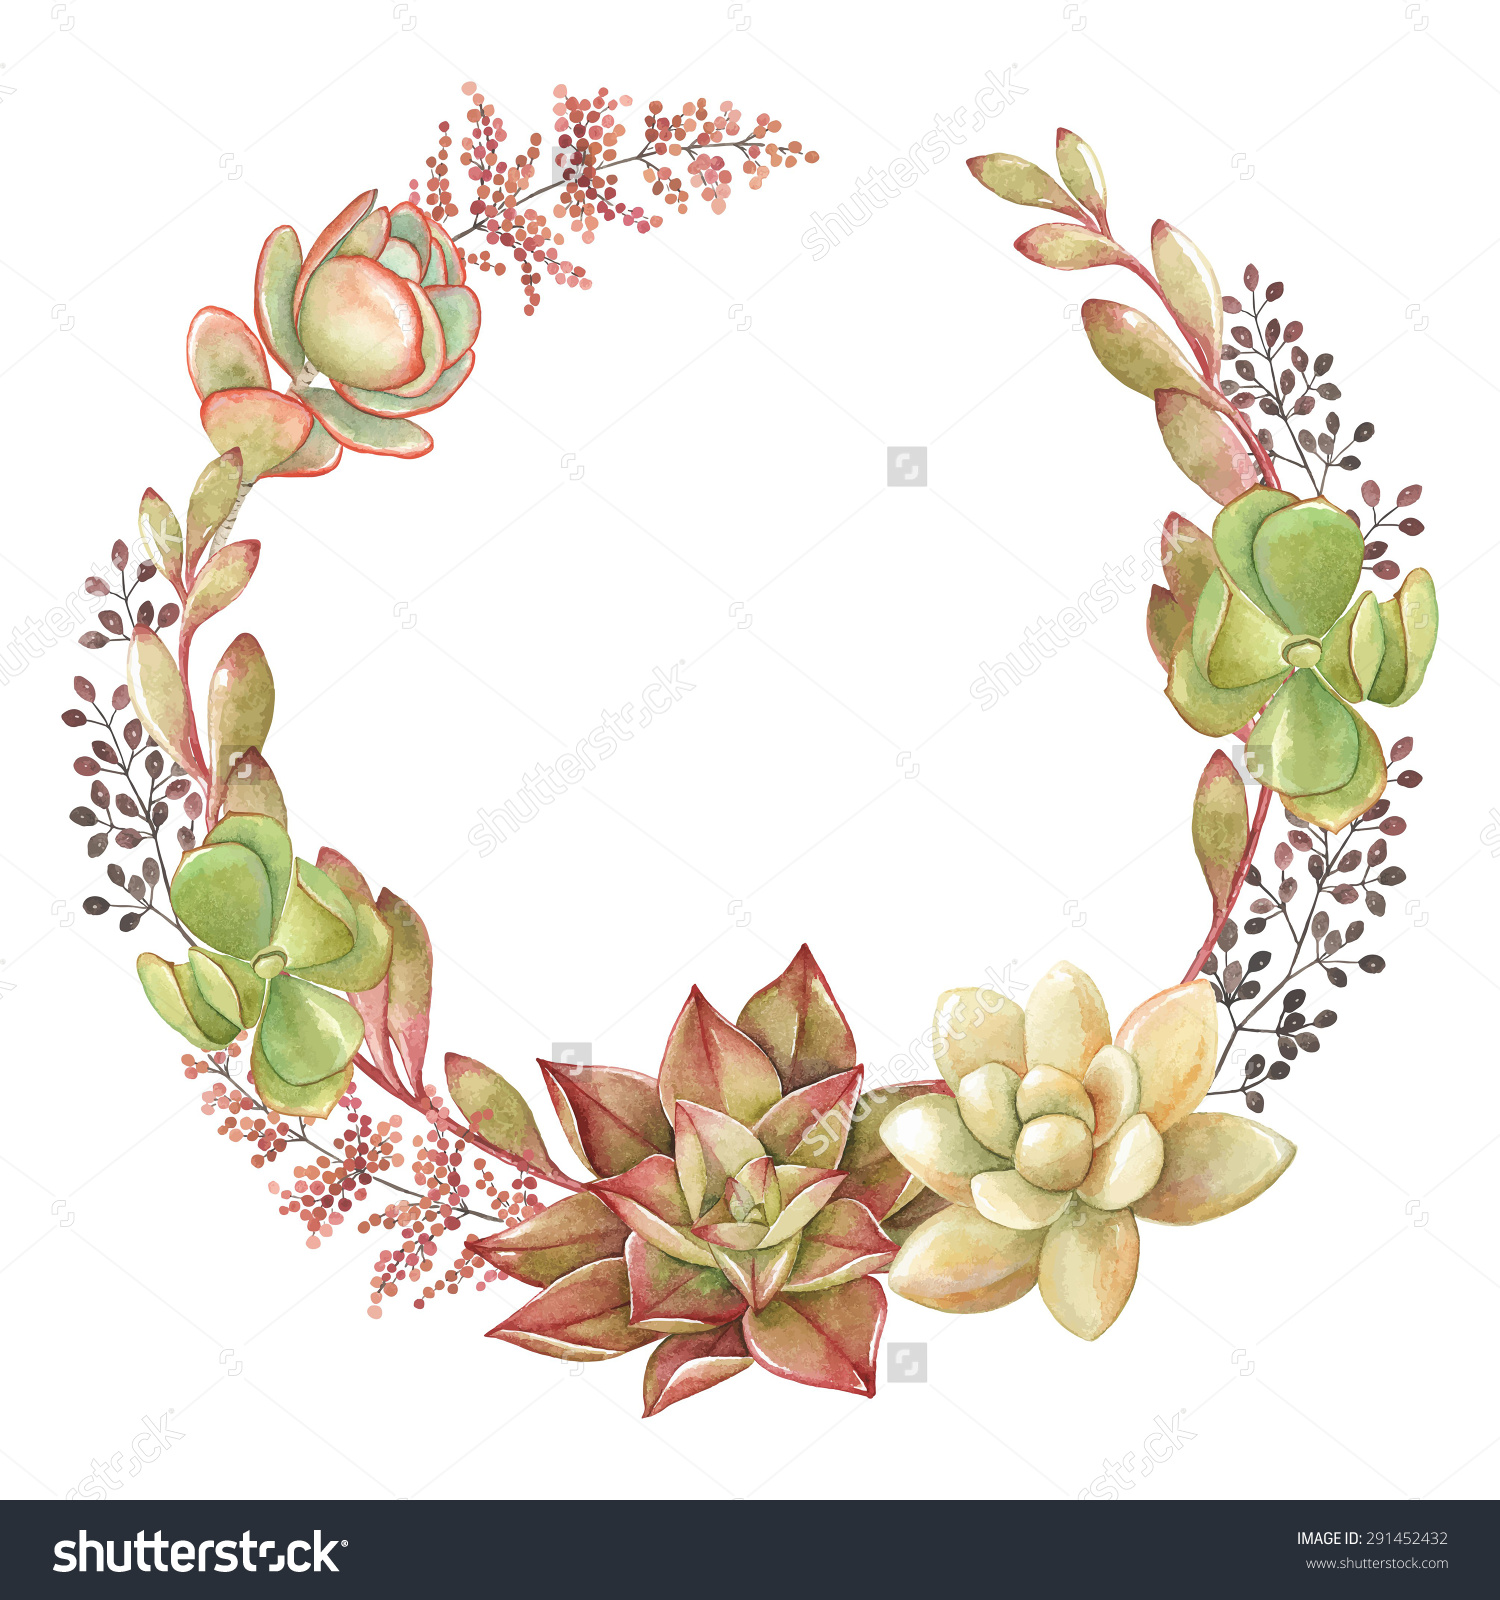 Kalanchoe clipart #1, Download drawings